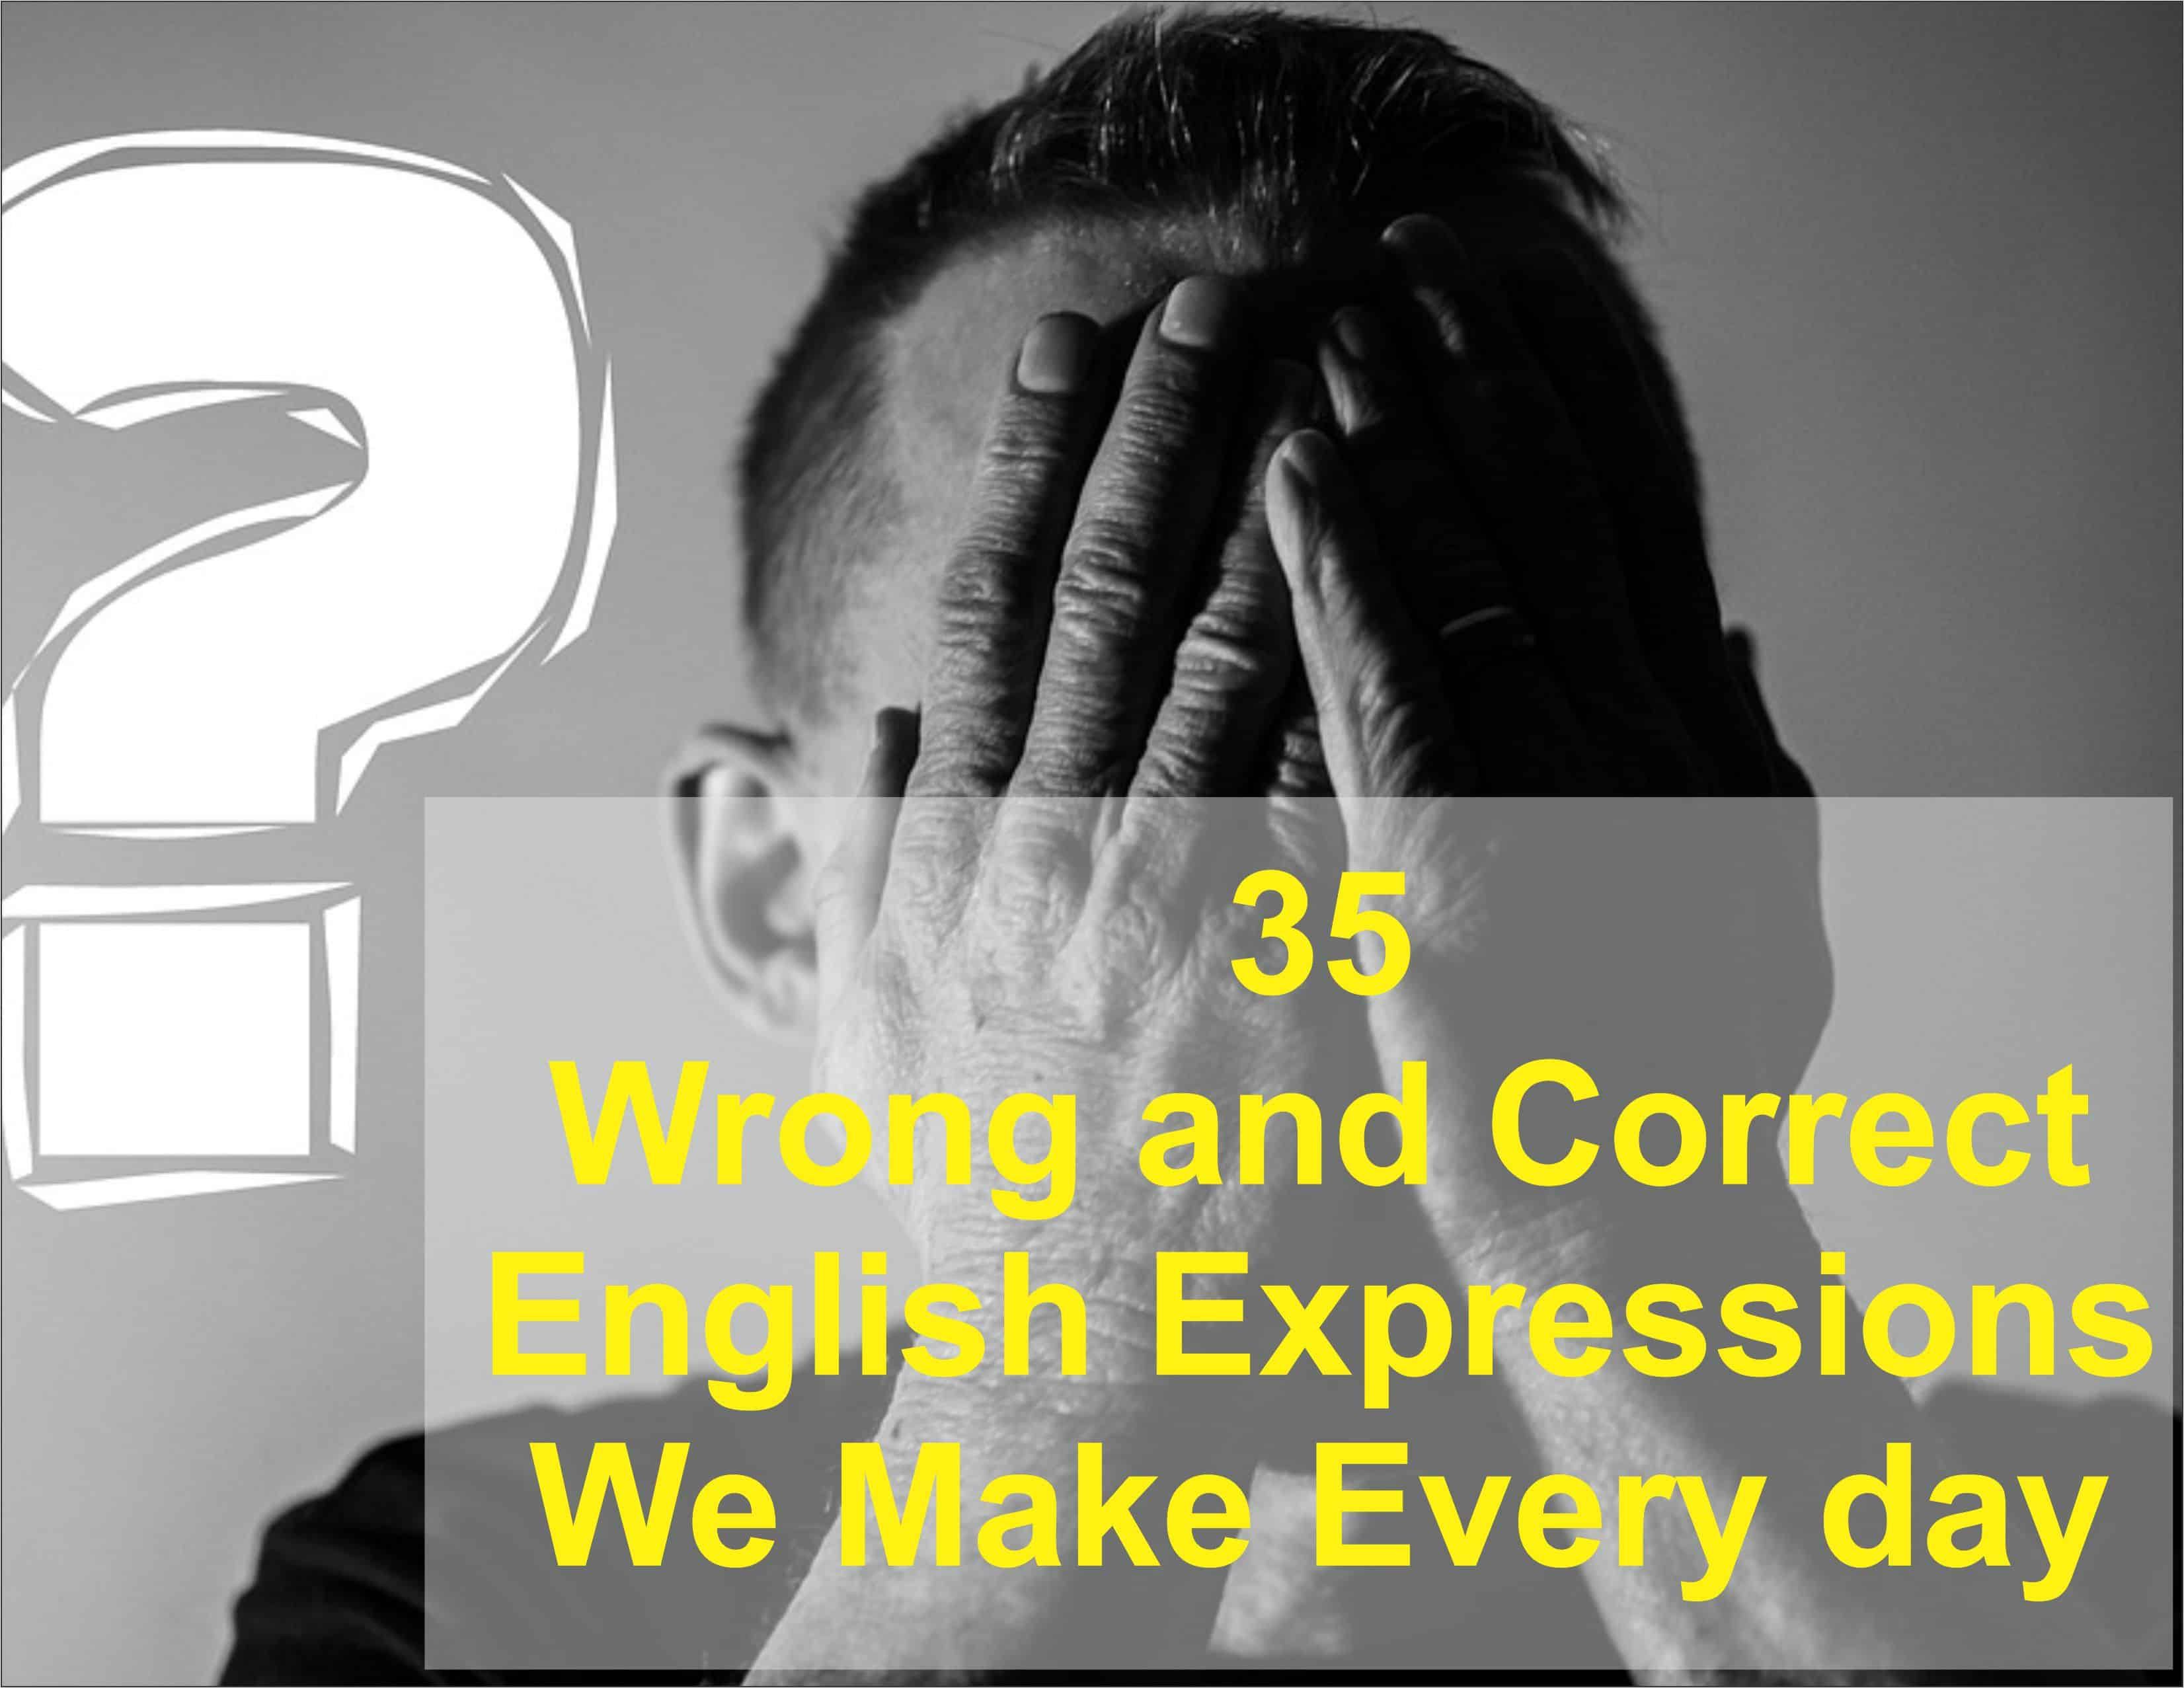 36 Wrong and Correct English Expressions We Make Every day